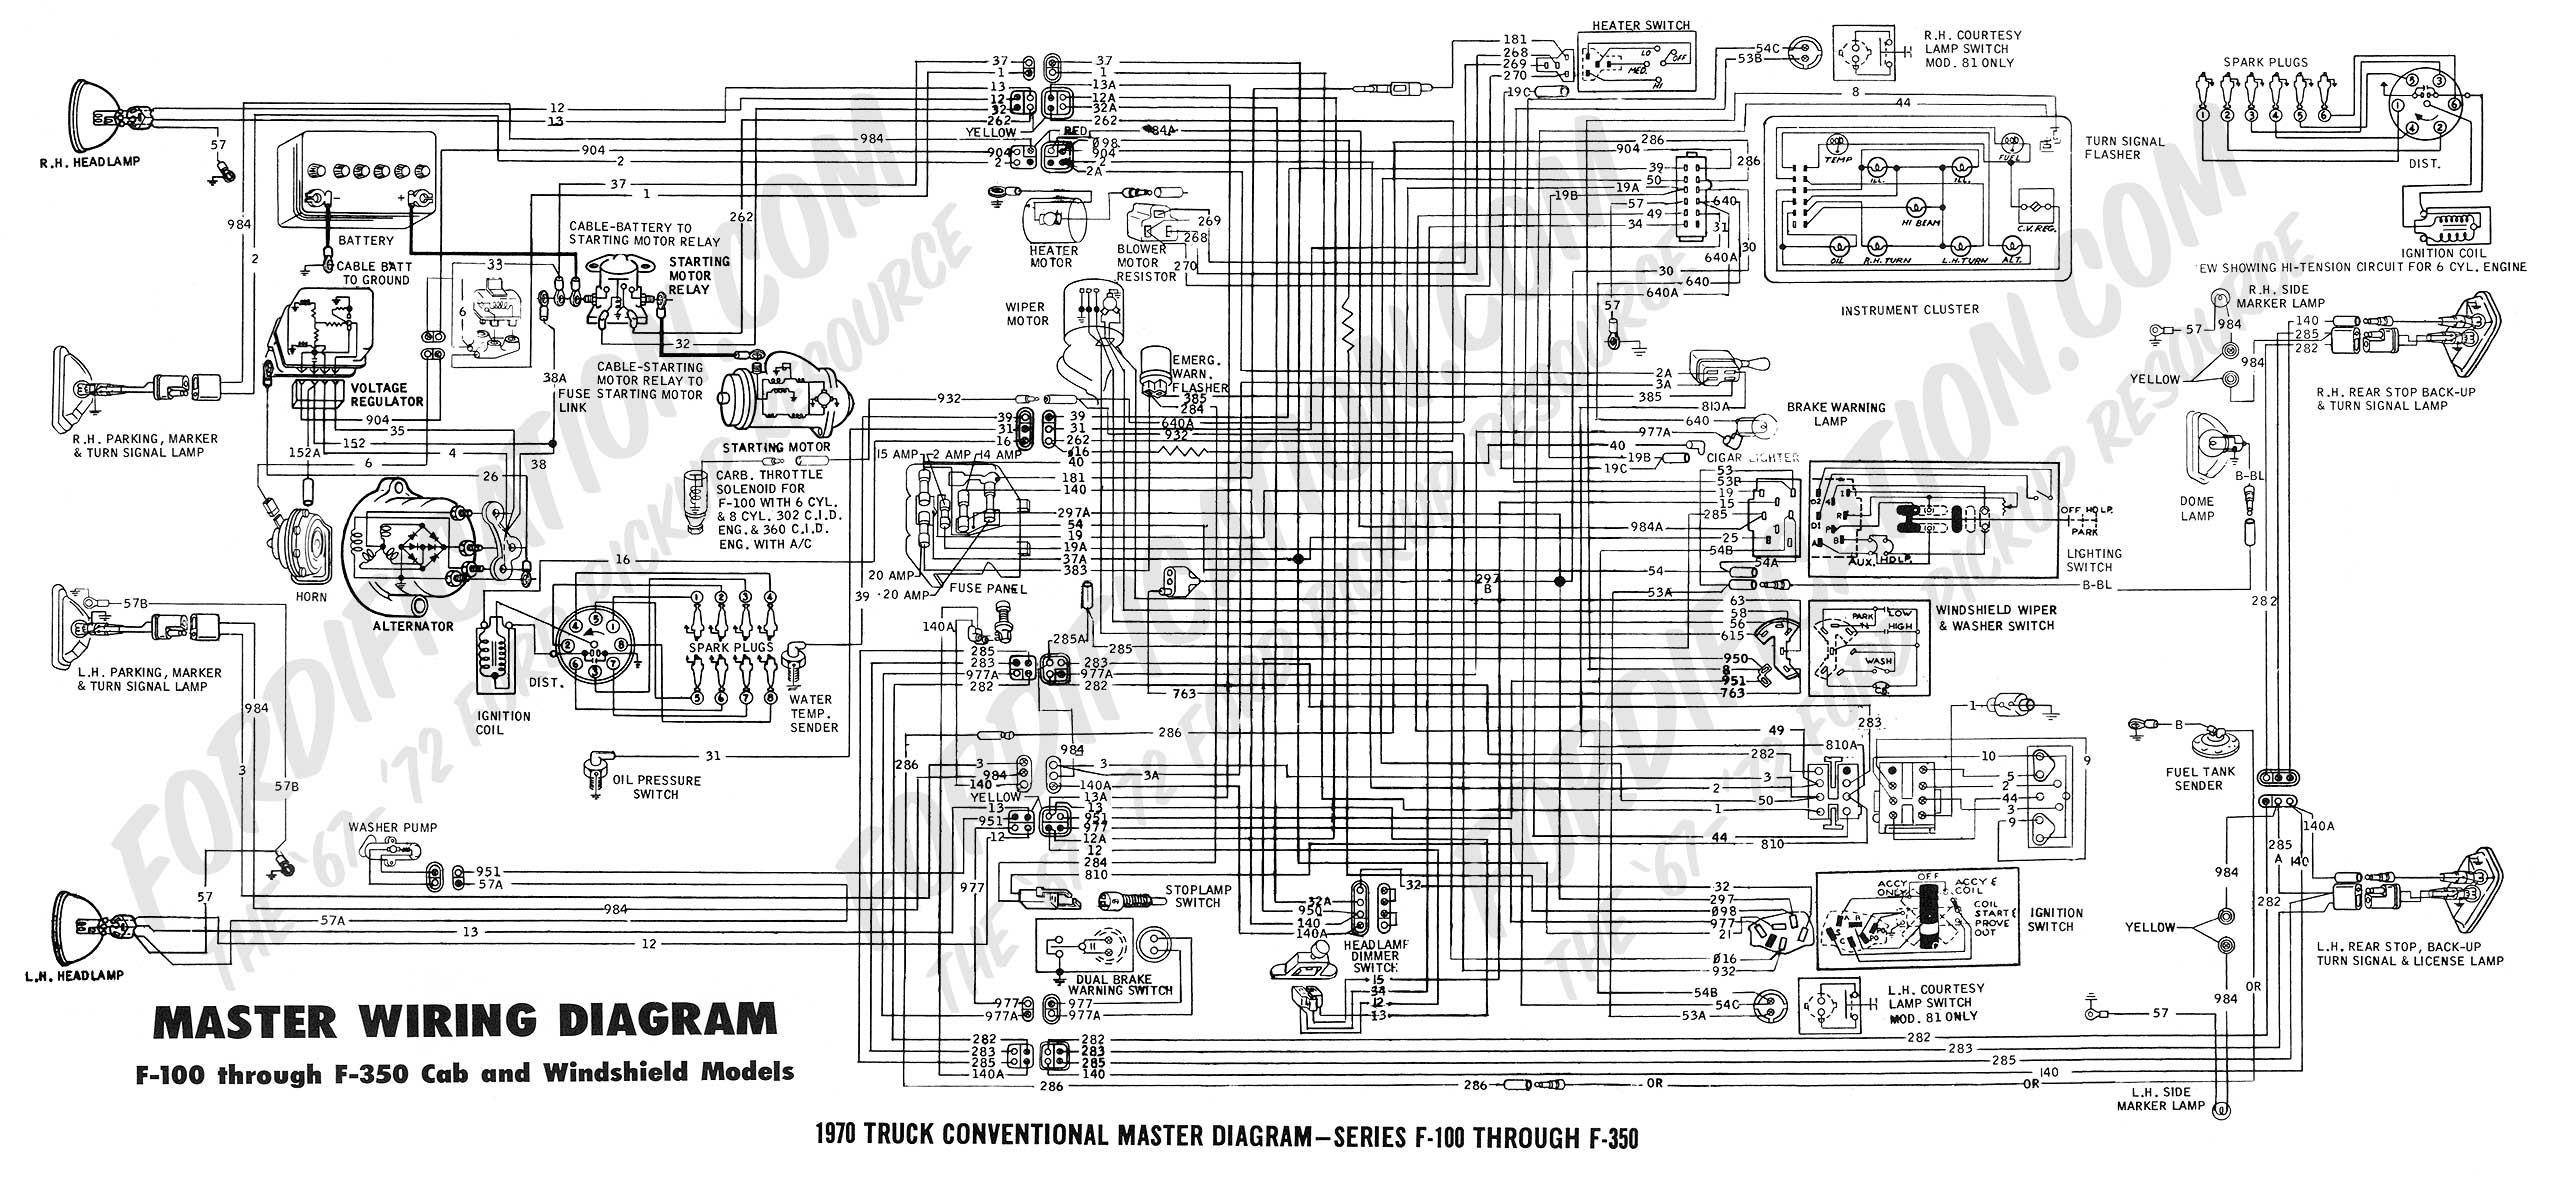 wiring diagram 70_master ford wiring harness diagrams ford wiring diagrams instruction trimble 750 ez steer wiring diagram at crackthecode.co